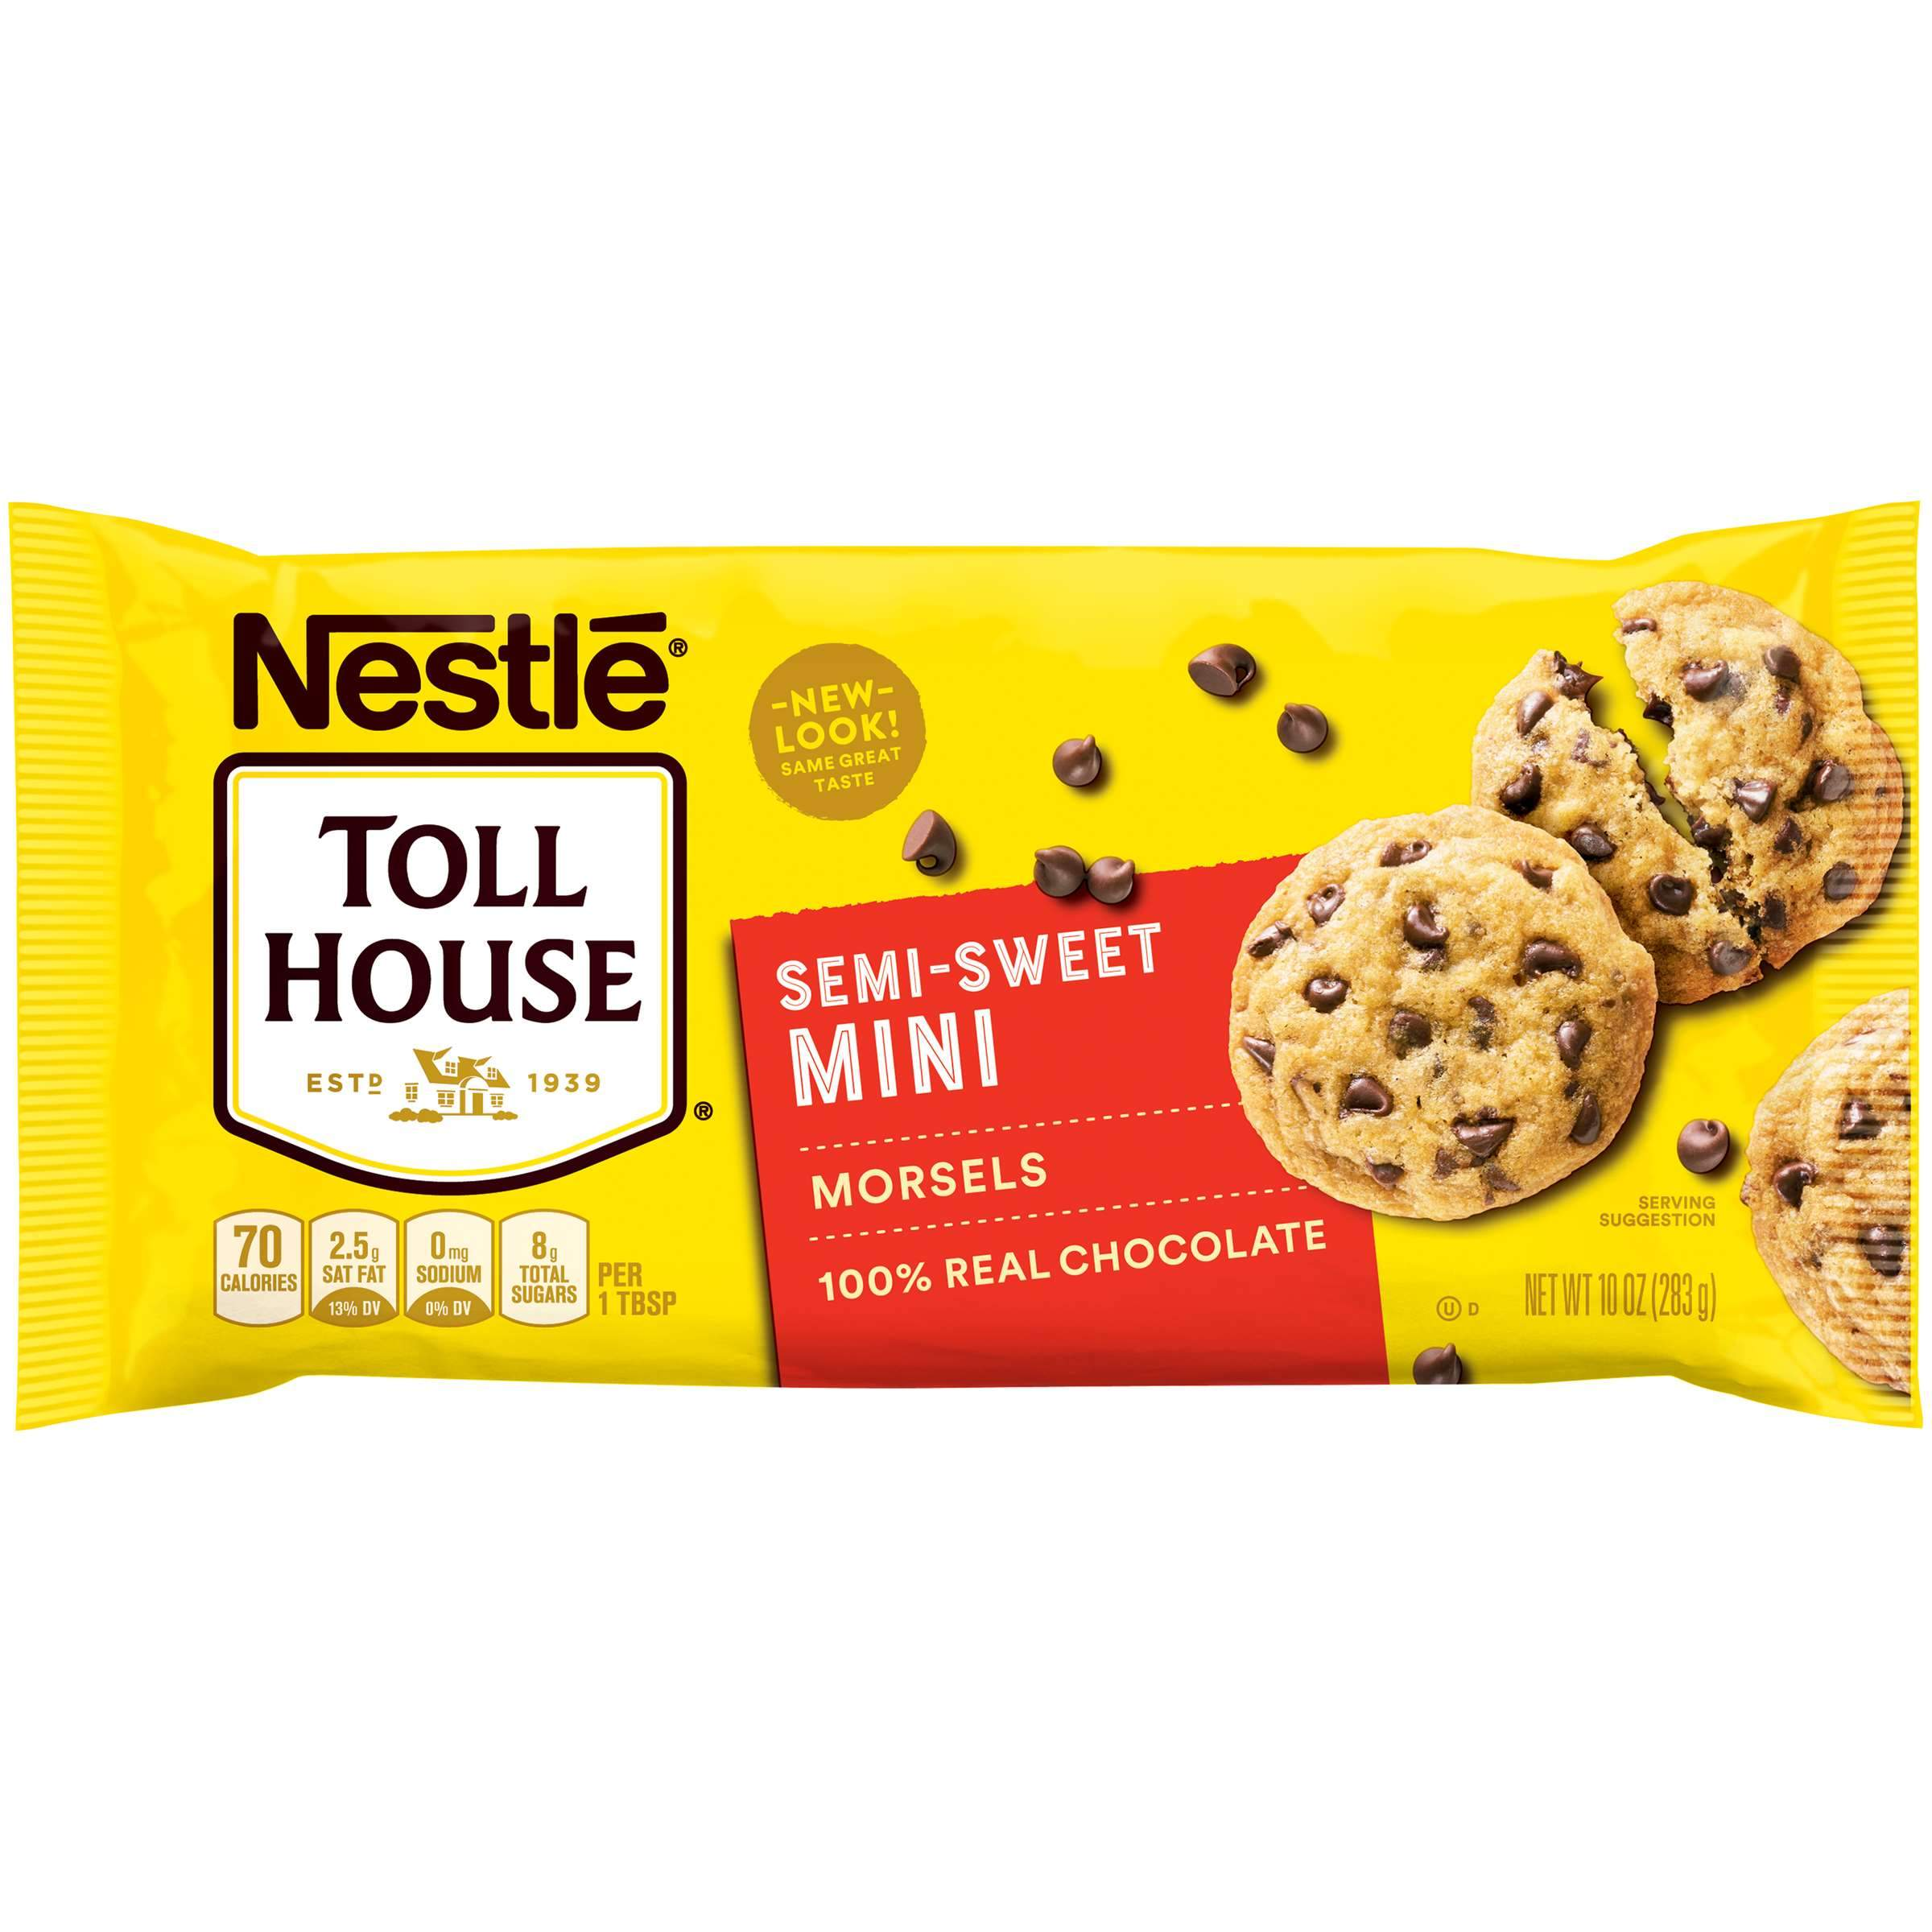 Nestlé Toll House Baking Morsels Toll House Semi-Sweet Mini 10 Ounce